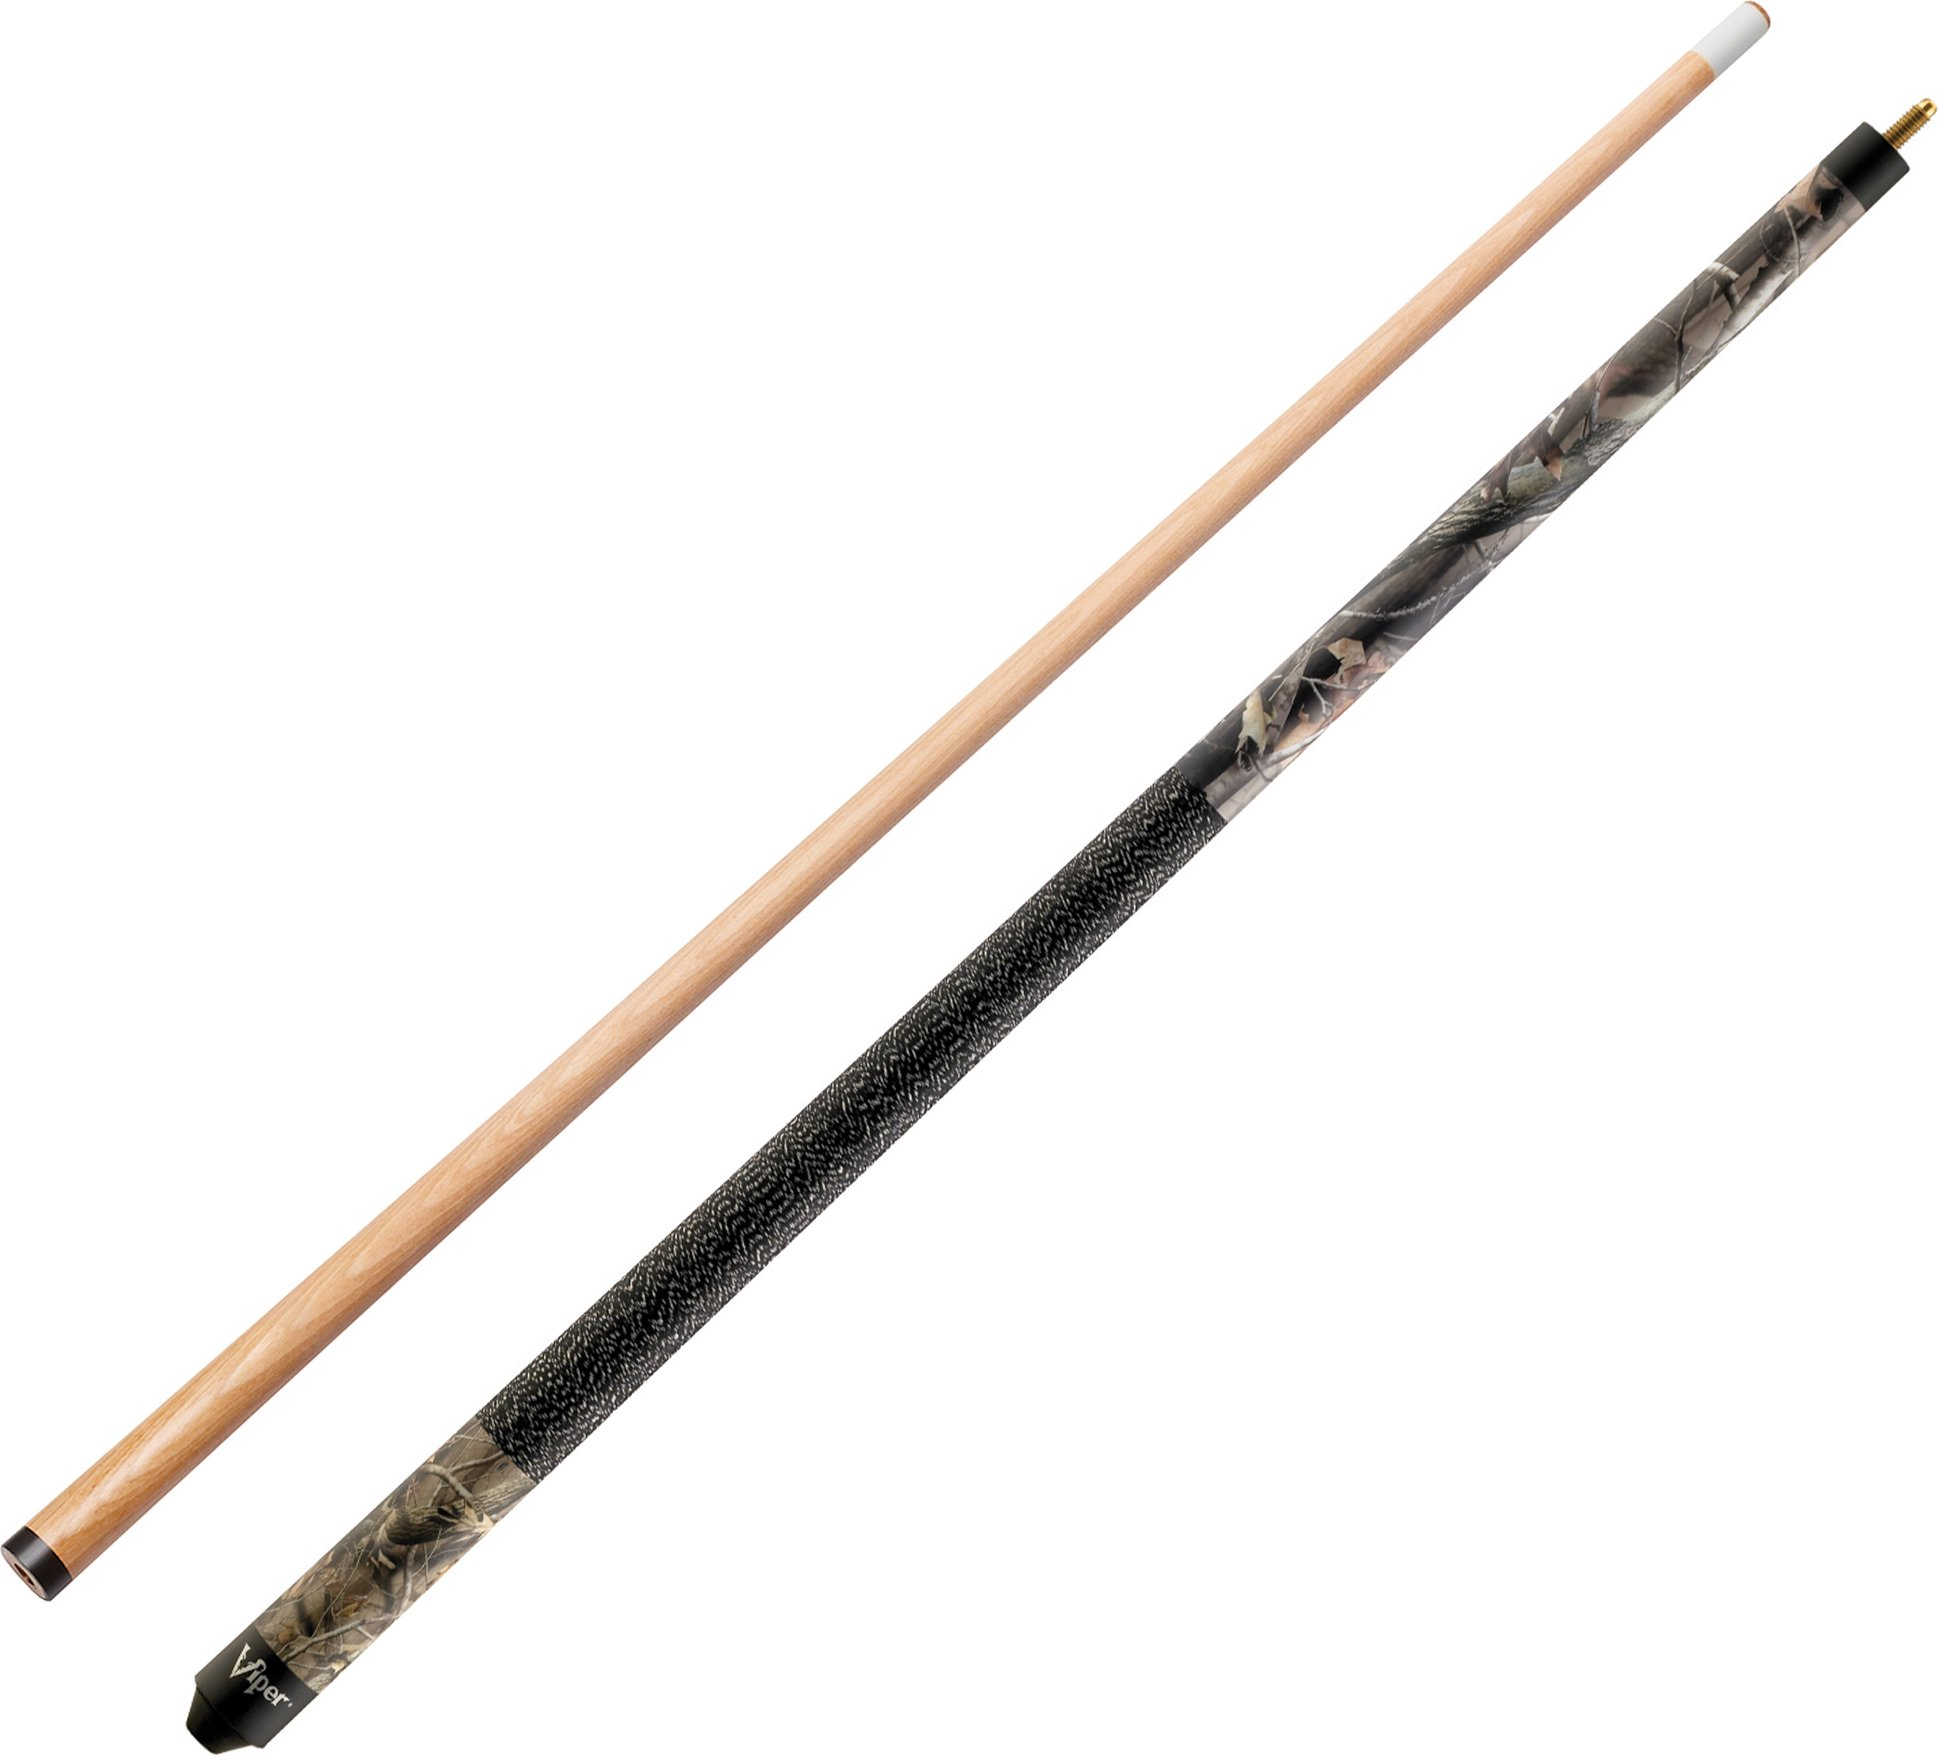 Viper Signature 57'' 2-Piece Billiard/Pool Cue, Realtree Hardwoods HD Camo